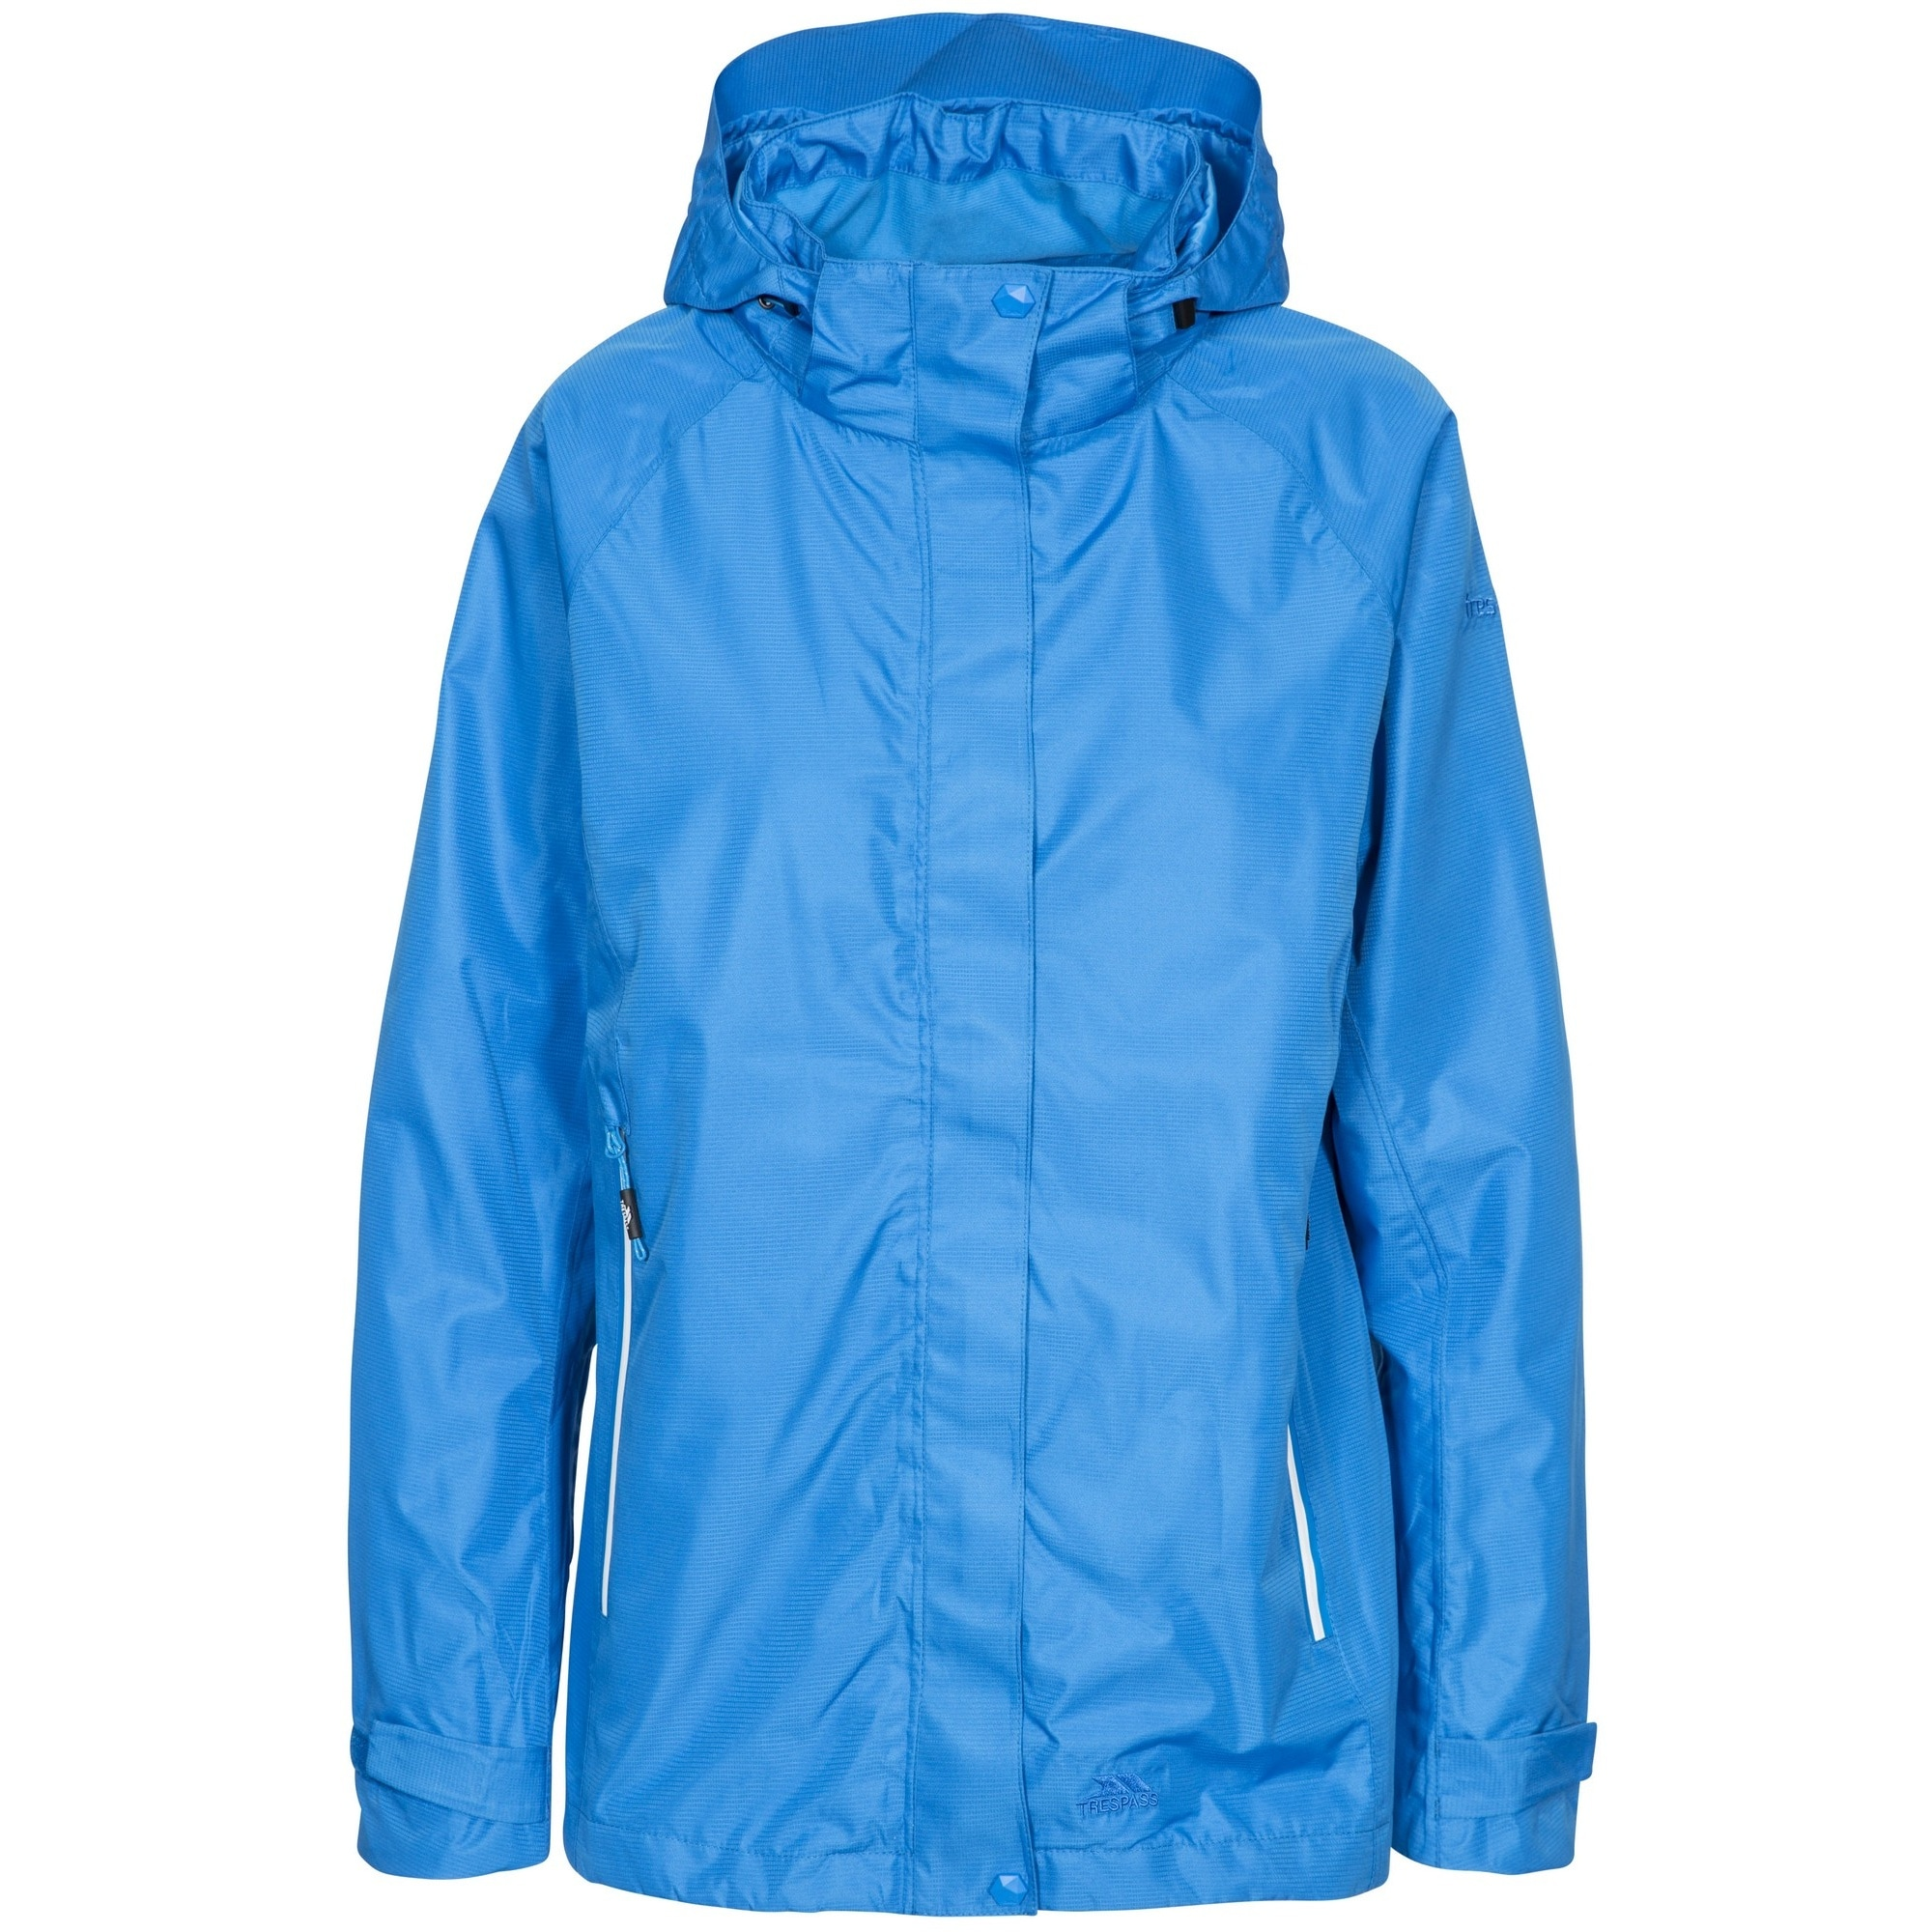 Trespass Outdoorjacke Damen Jacke Review wasserfest